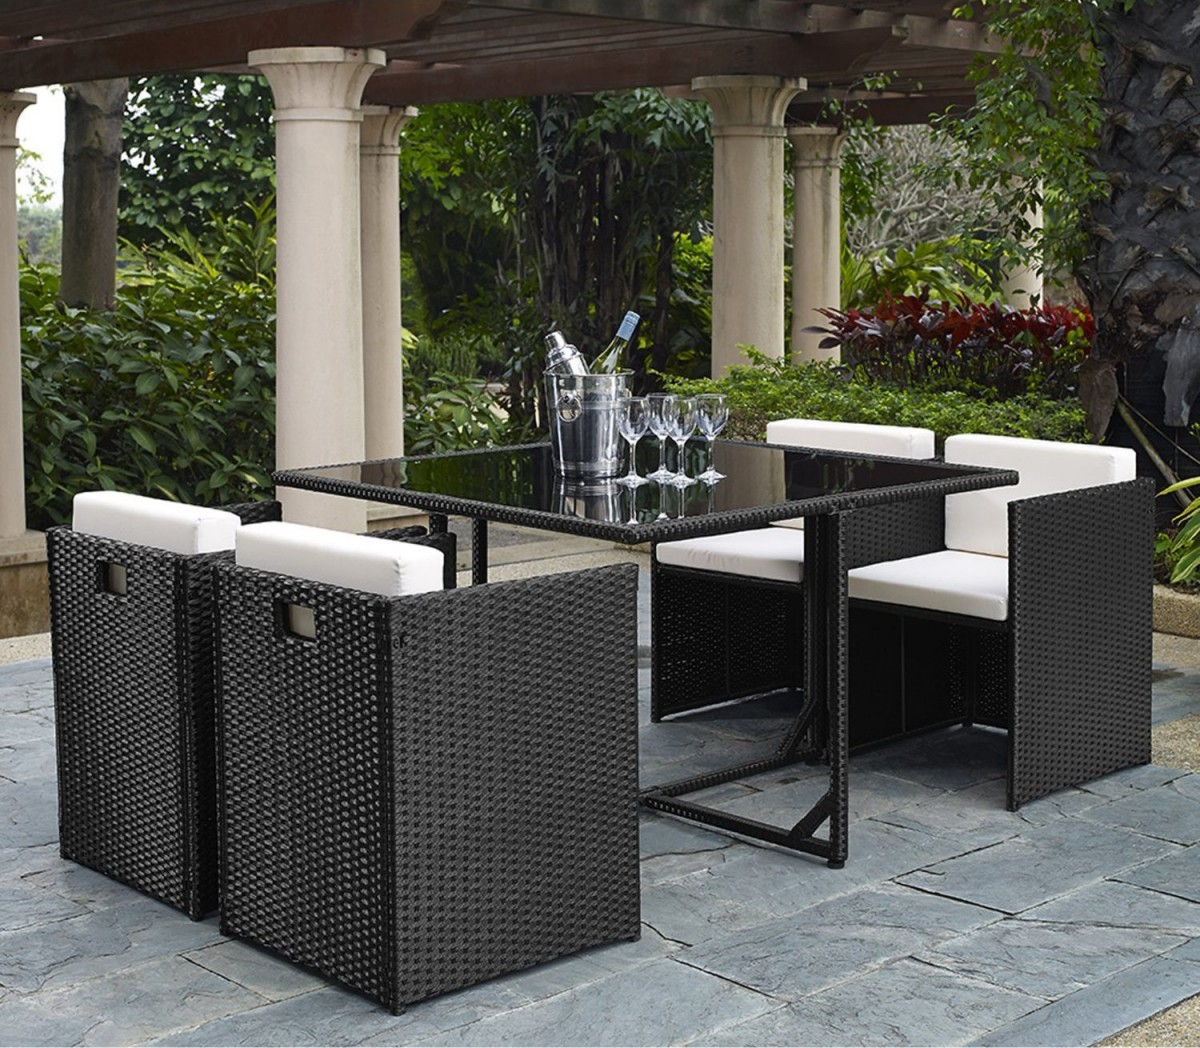 5 piece rattan cube garden furniture set w stowaway chairs for Outdoor patio table set